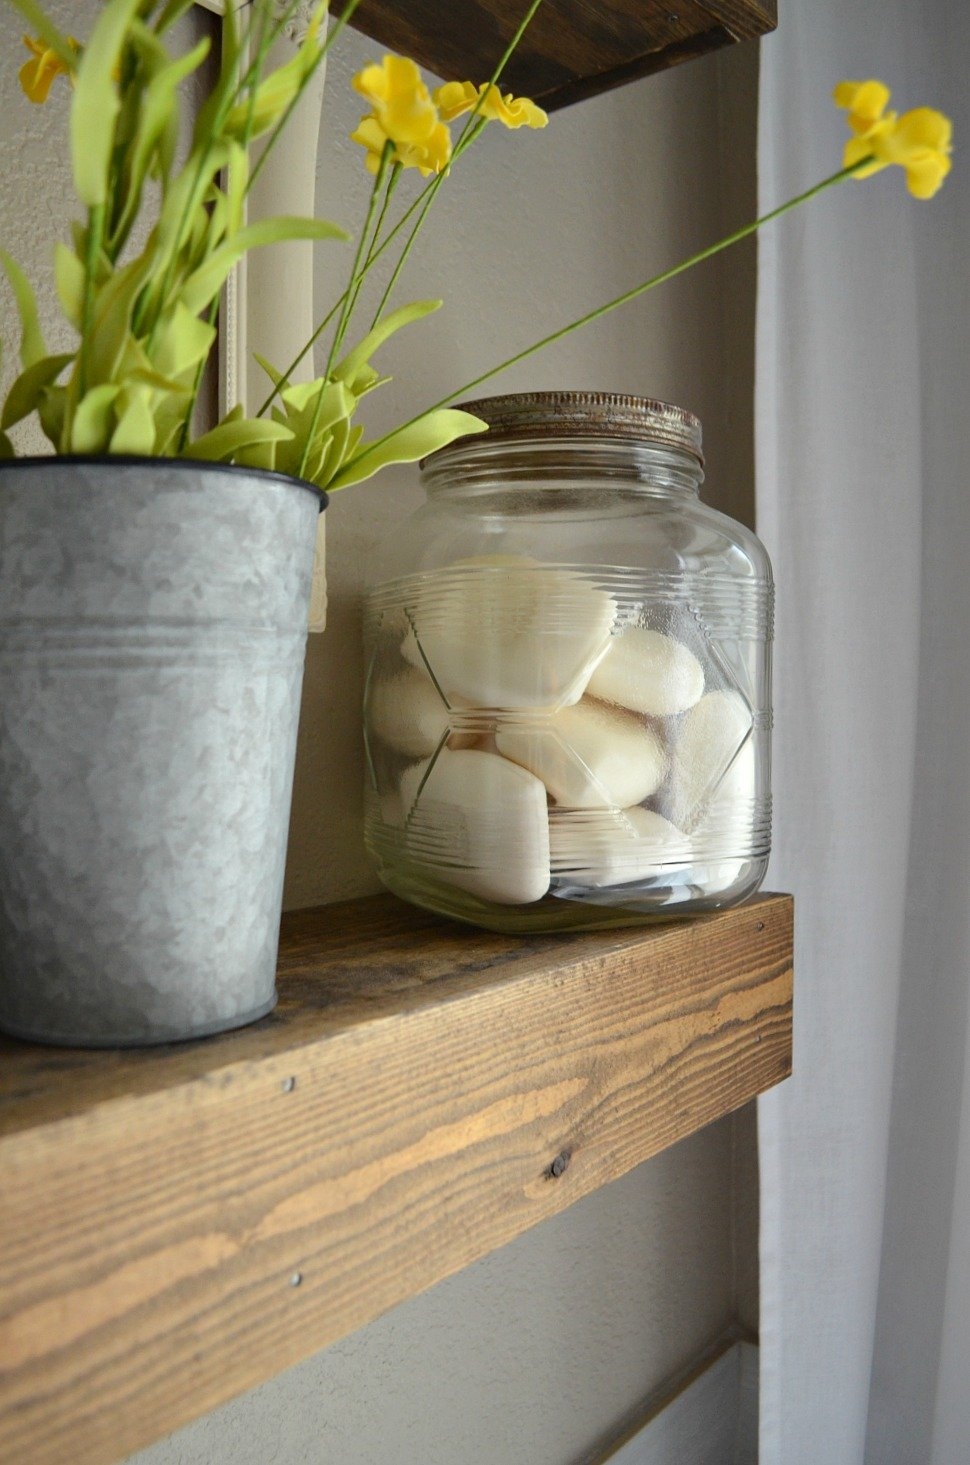 Farmhouse Bathroom Decor Vintage Jar for Soap